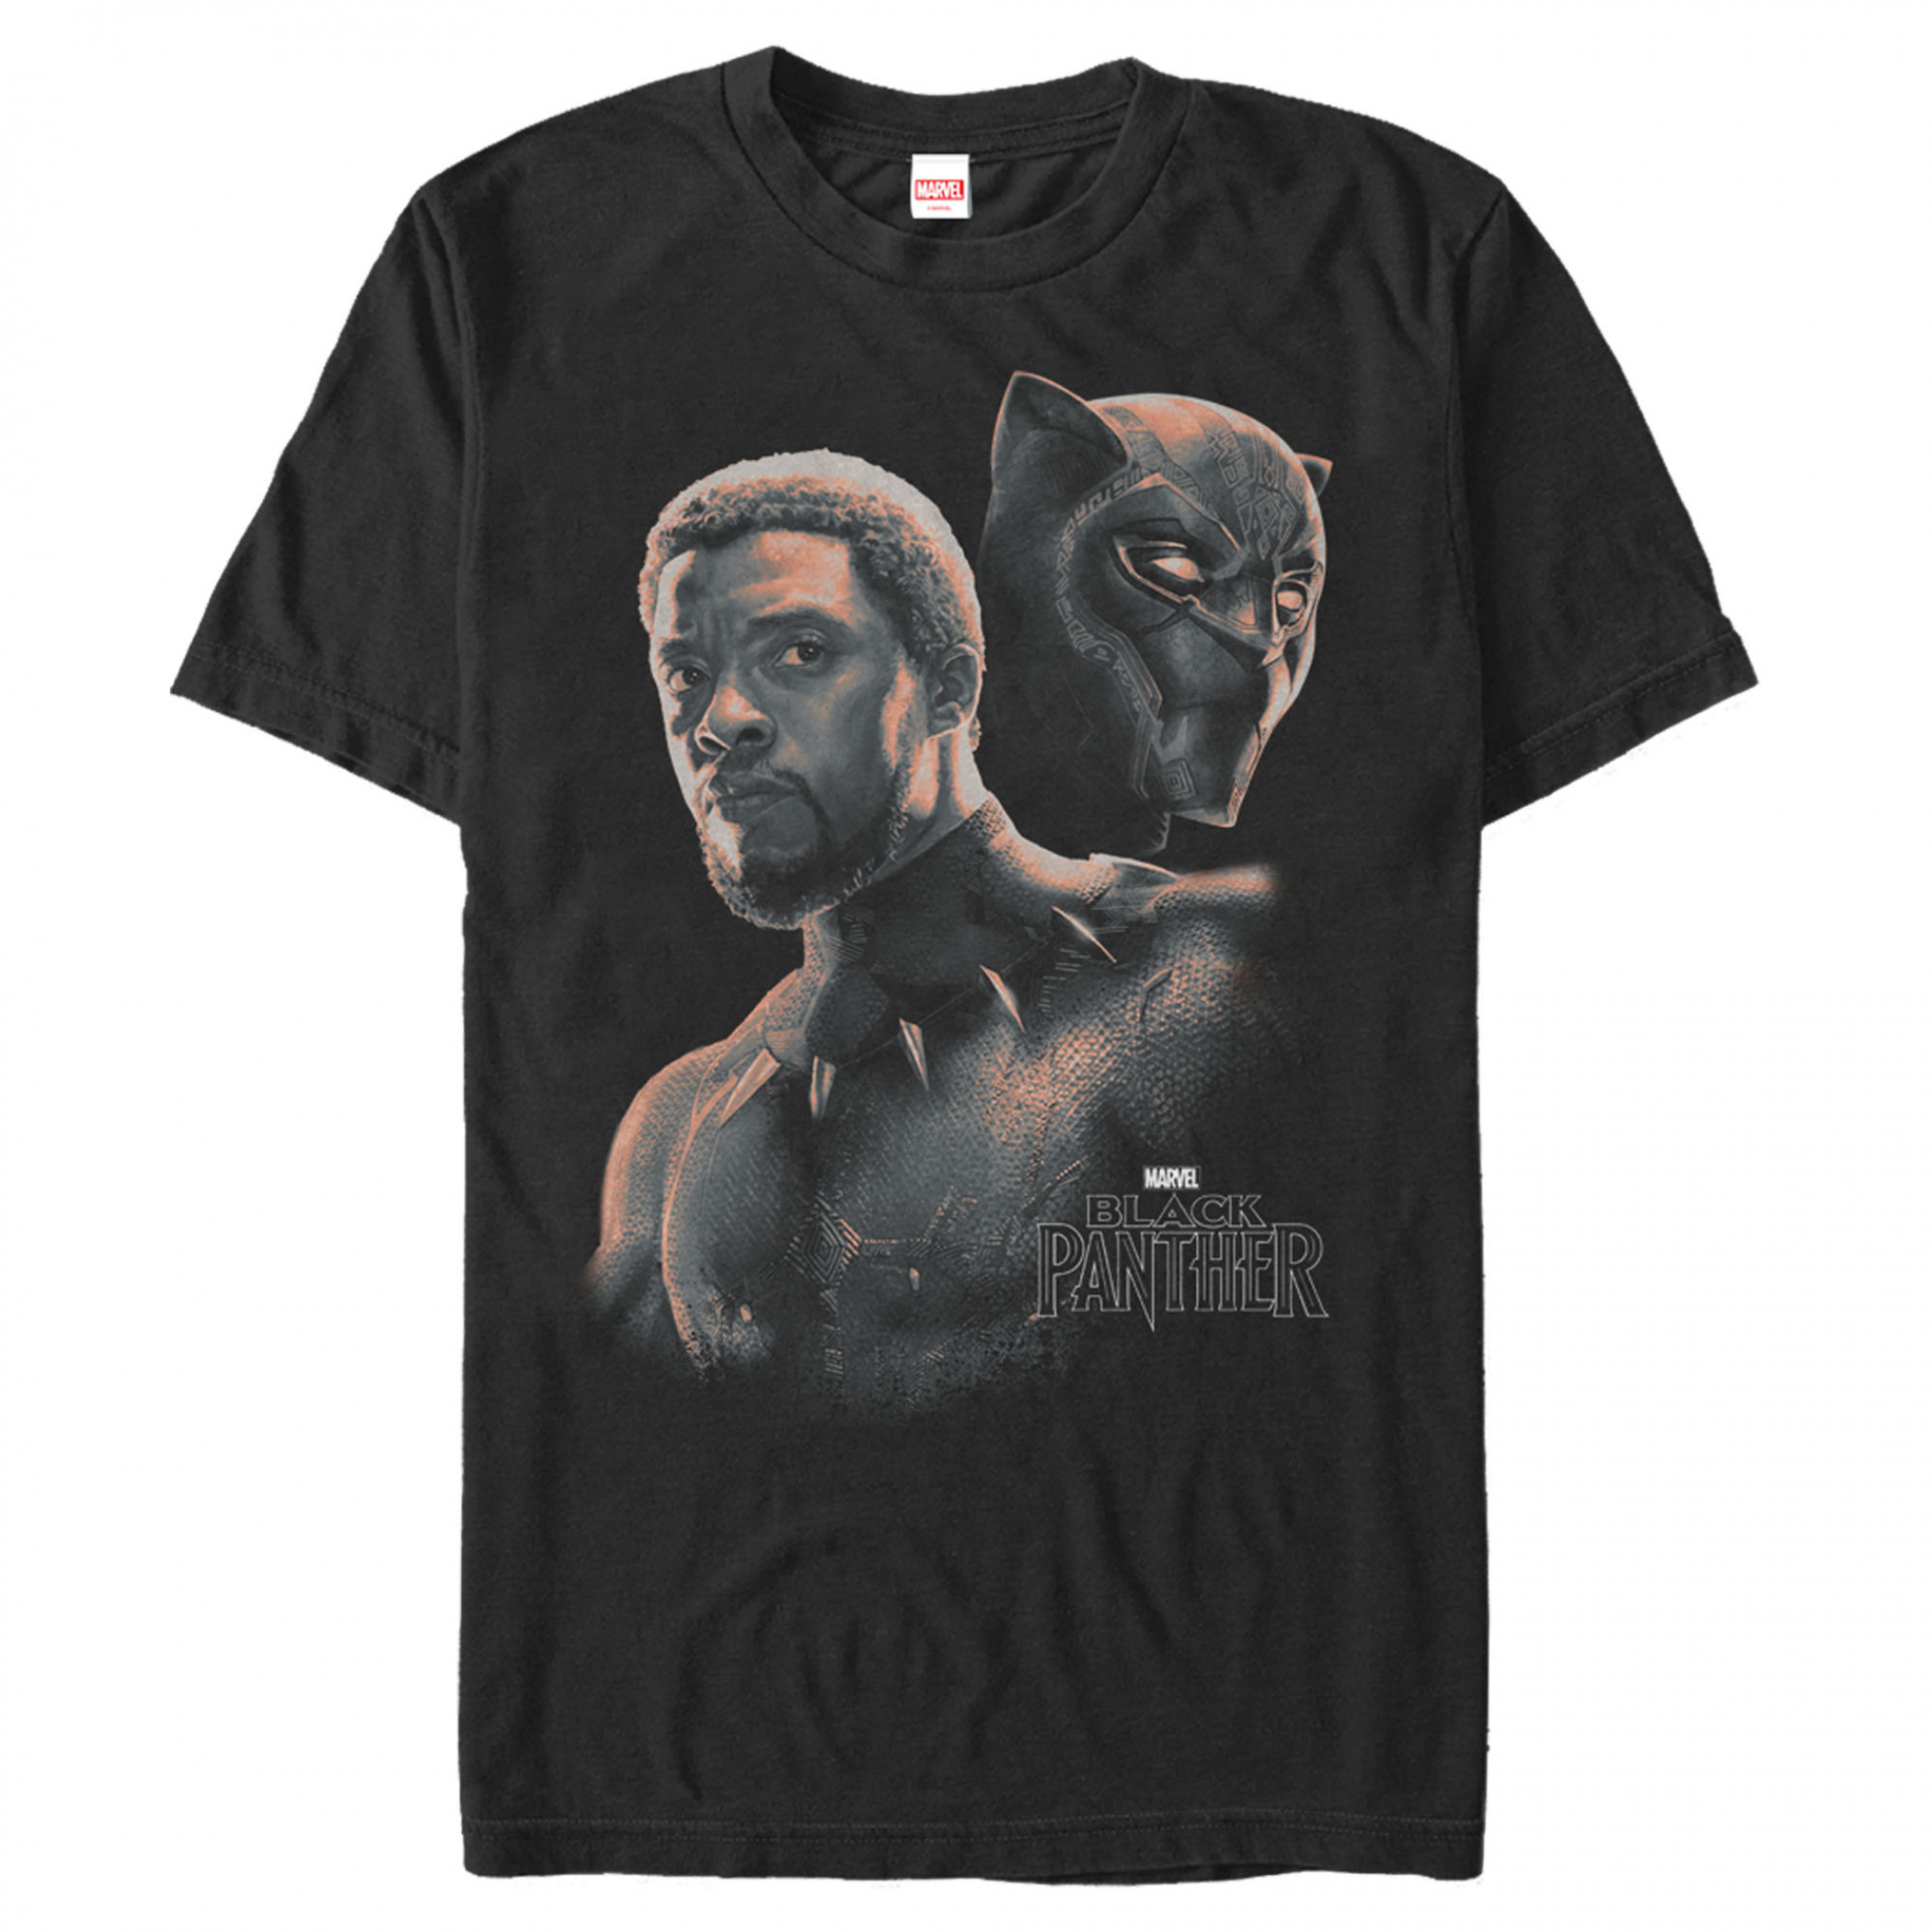 Black Panther Avenge The Fallen Marvel T-Shirt